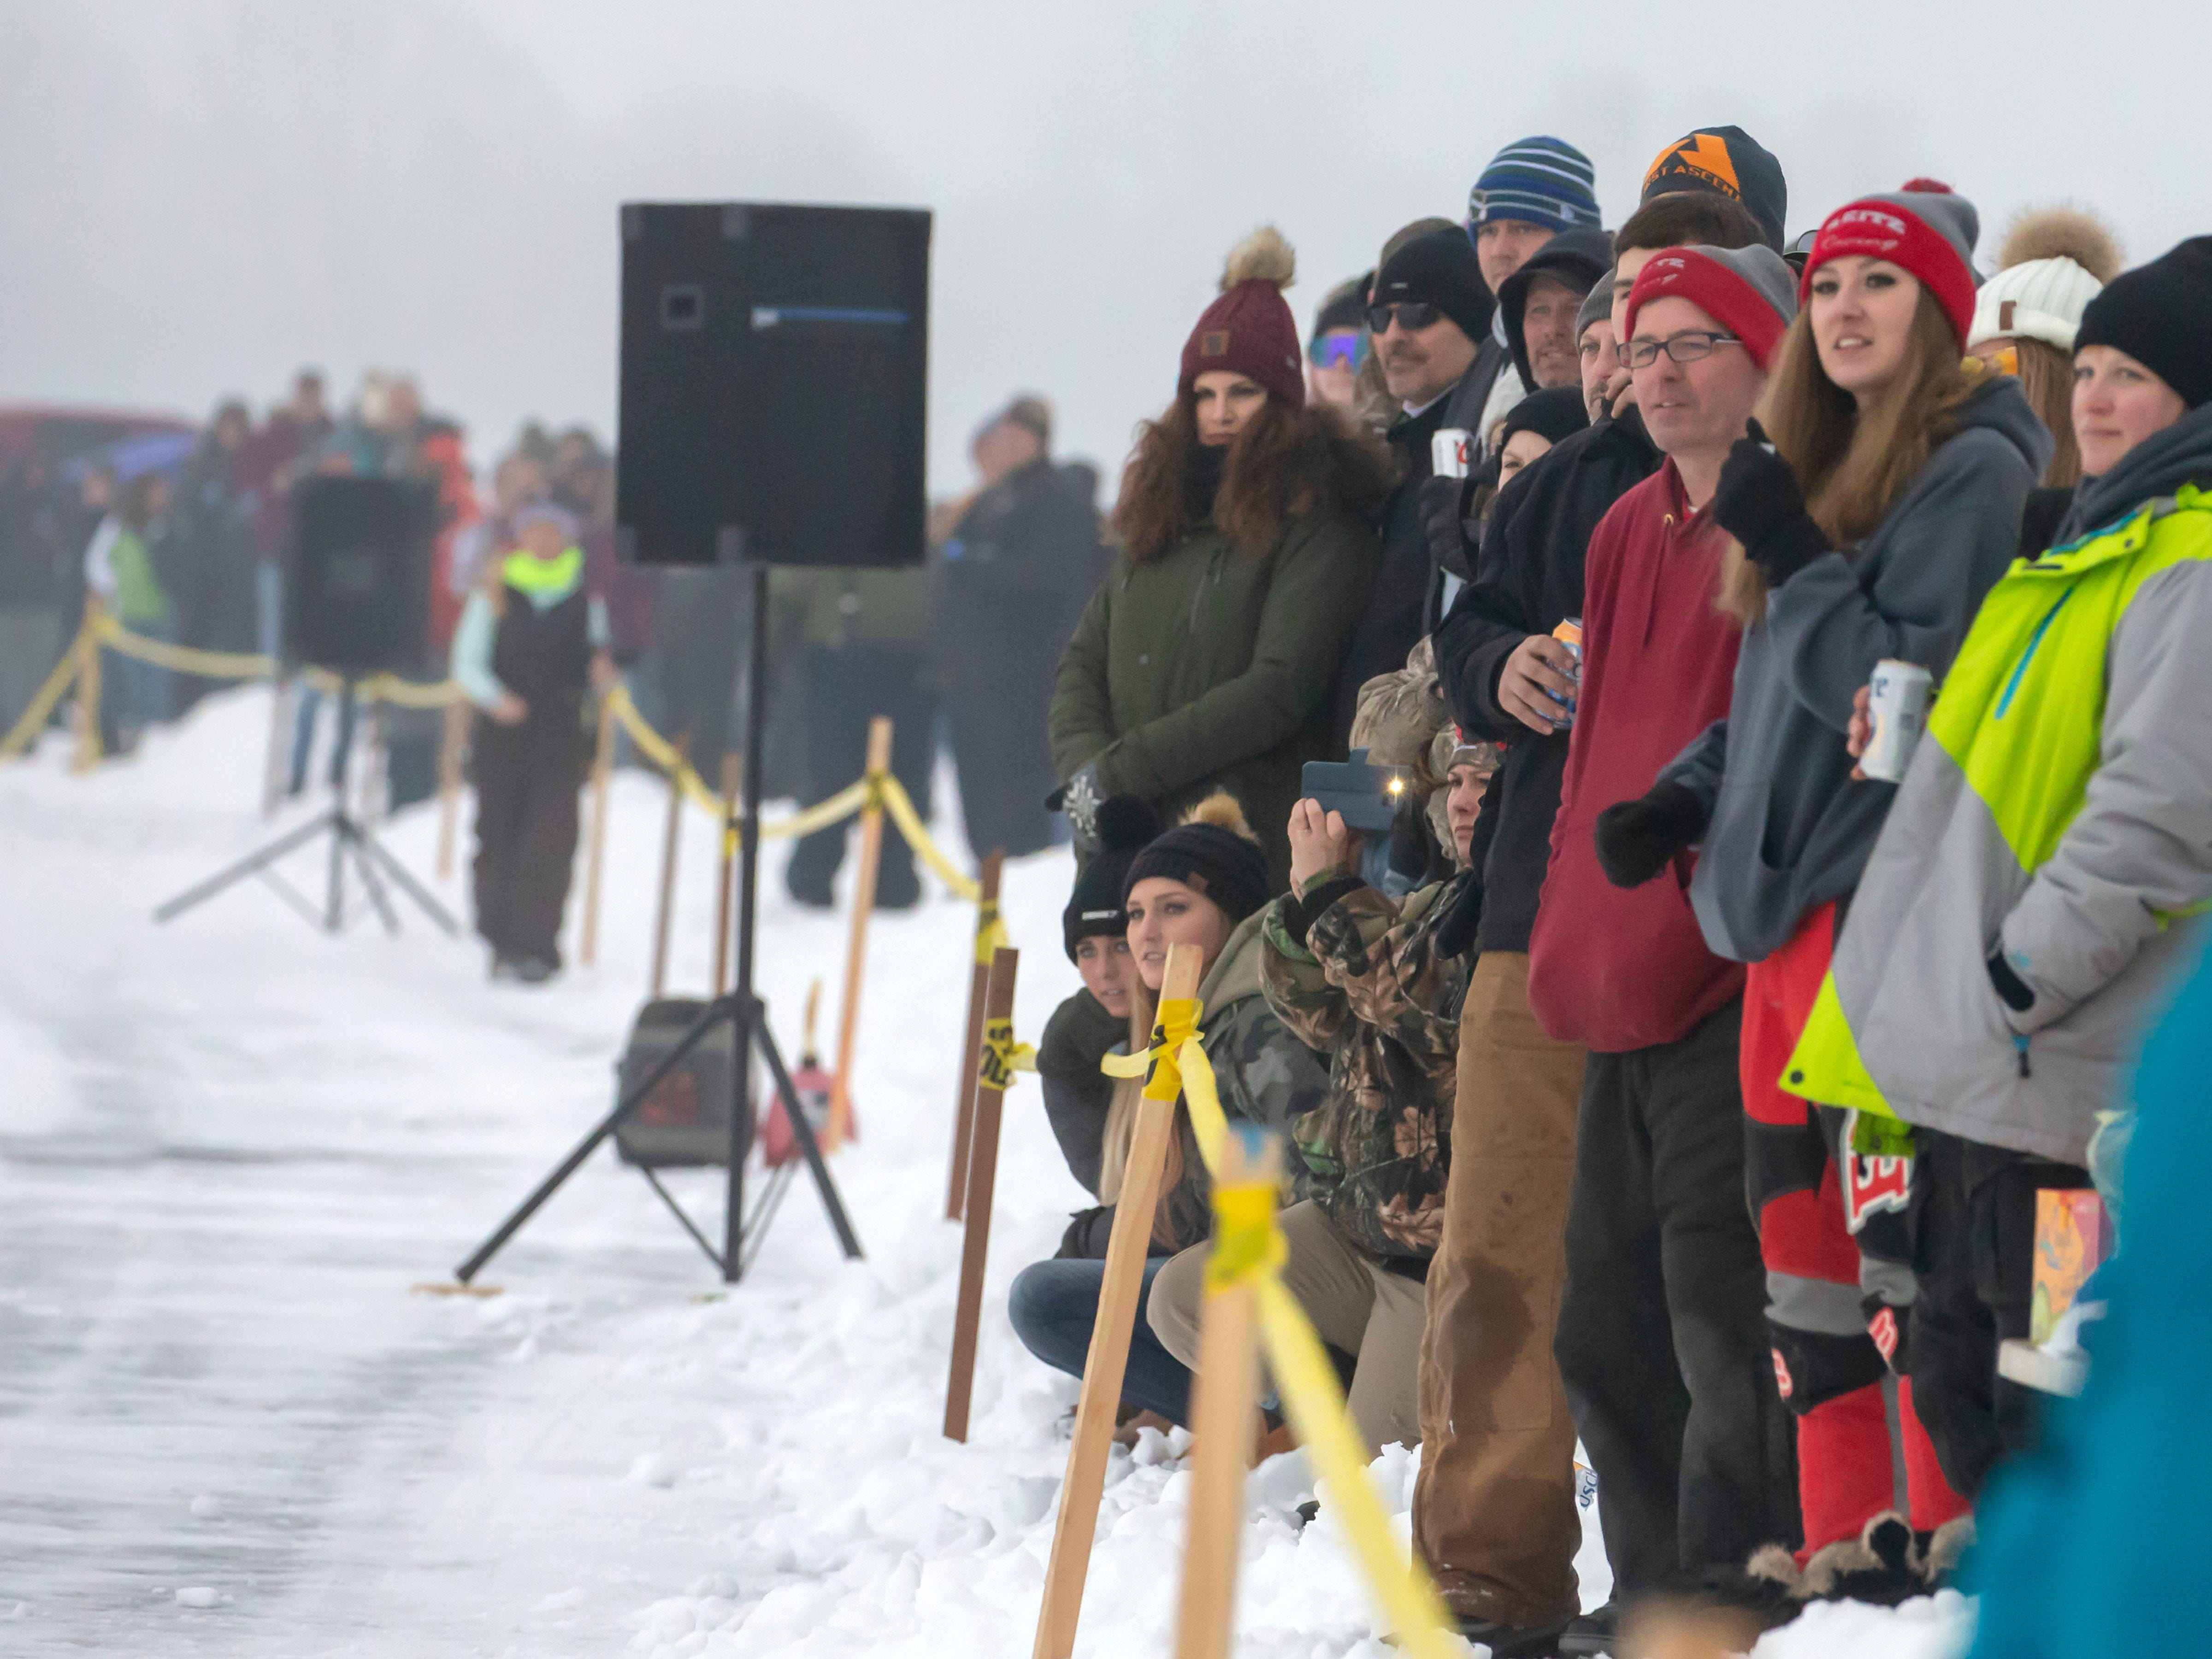 A crowd watches the races held during the Otter Street Fishing Club Winter Fisheree at Miller's Bay in Menominee Park on Saturday, Feb. 2, 2019.